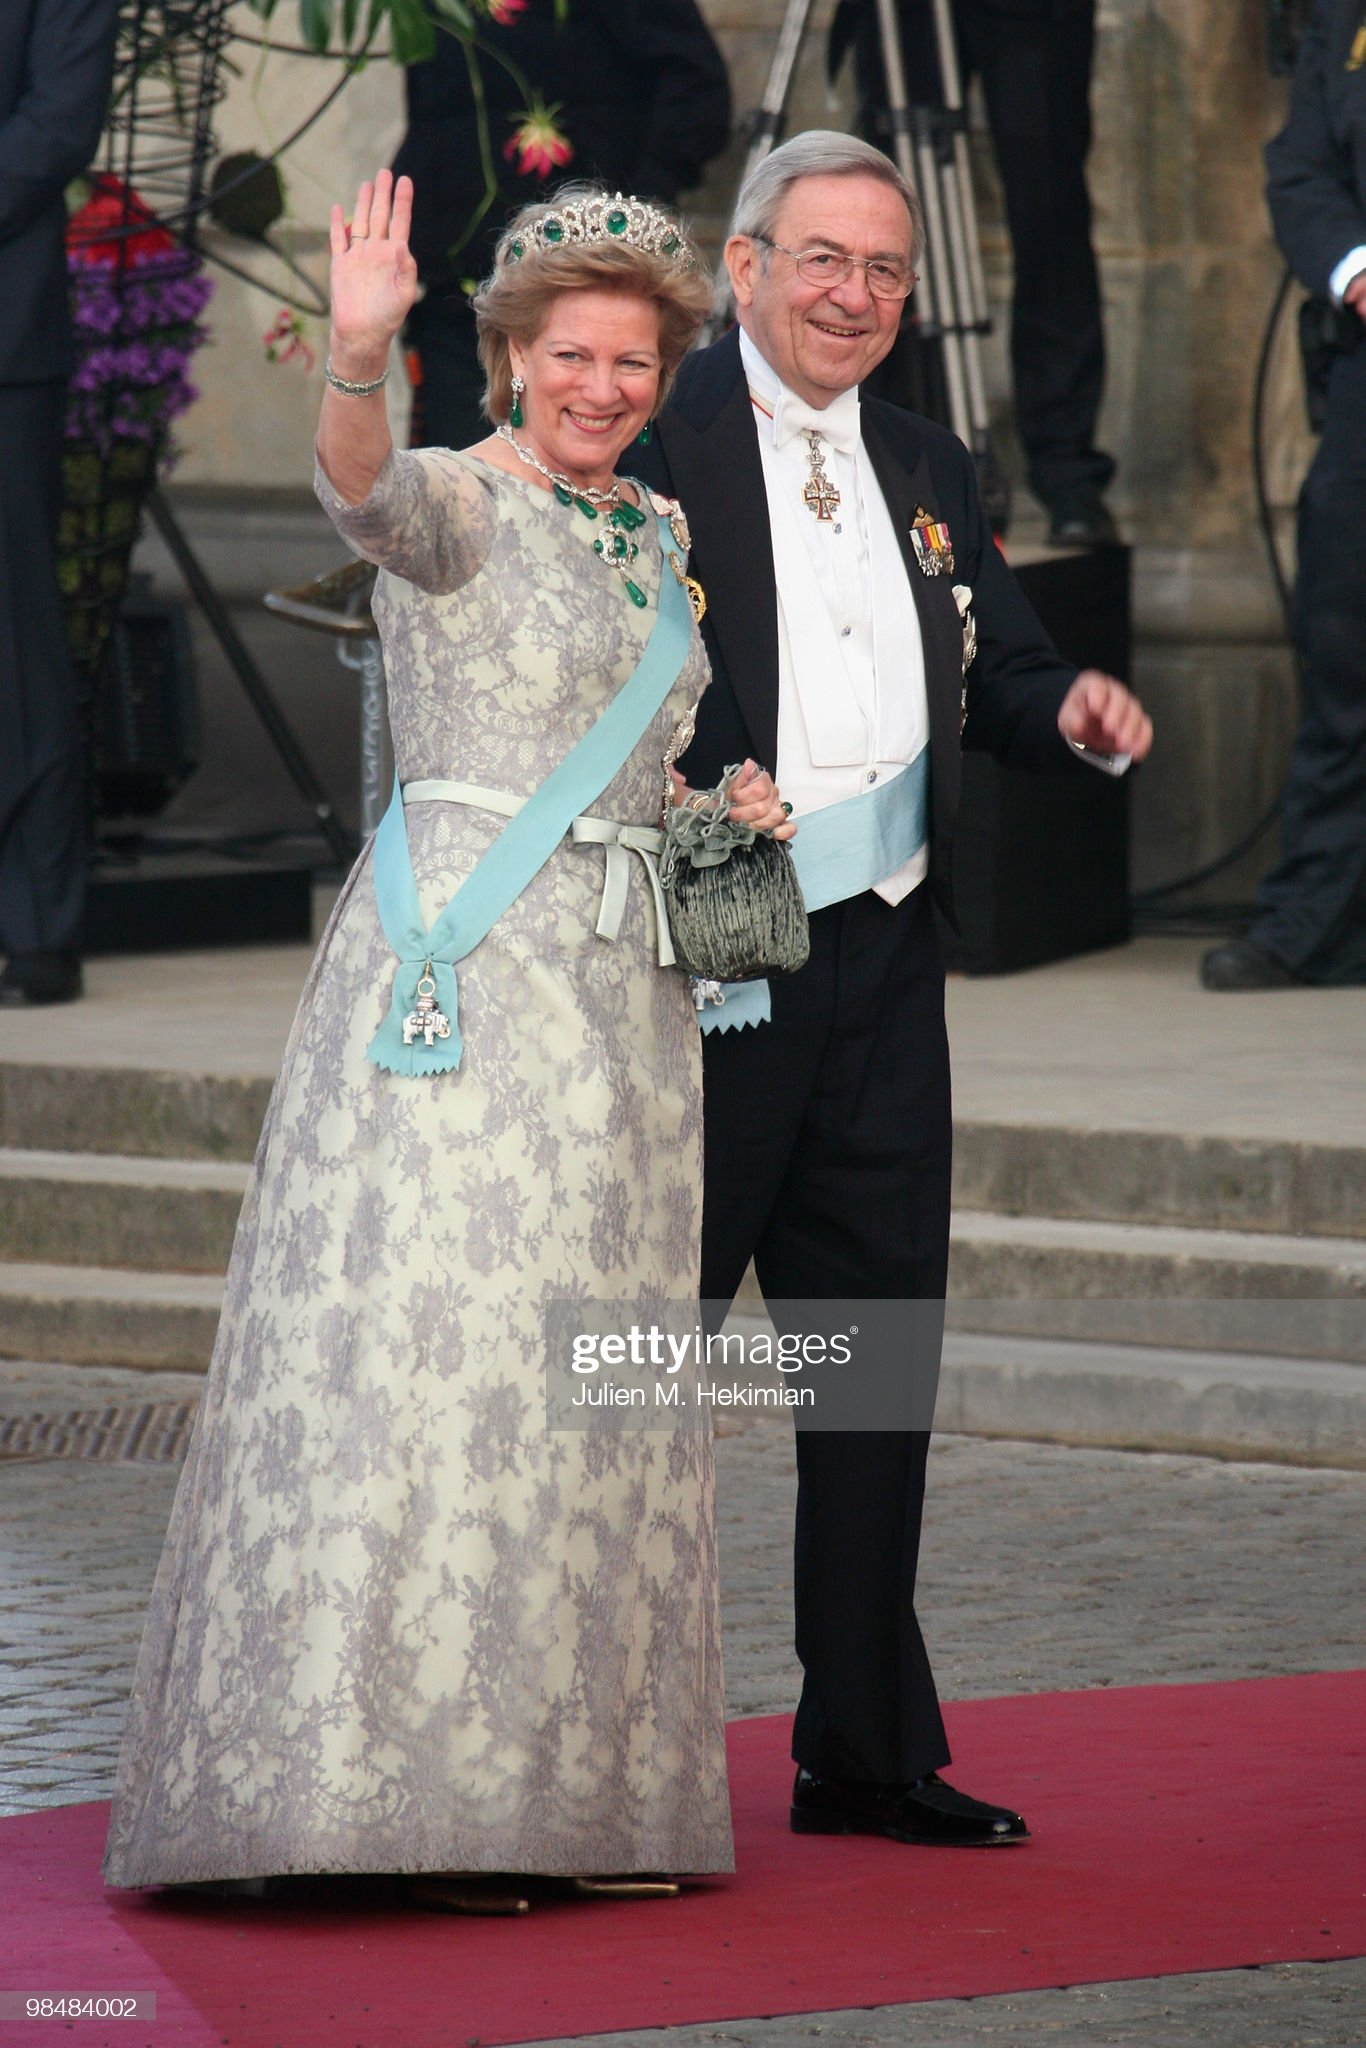 Gala Performance In Celebration Of Queen Margrethe's 70th Birthday : News Photo